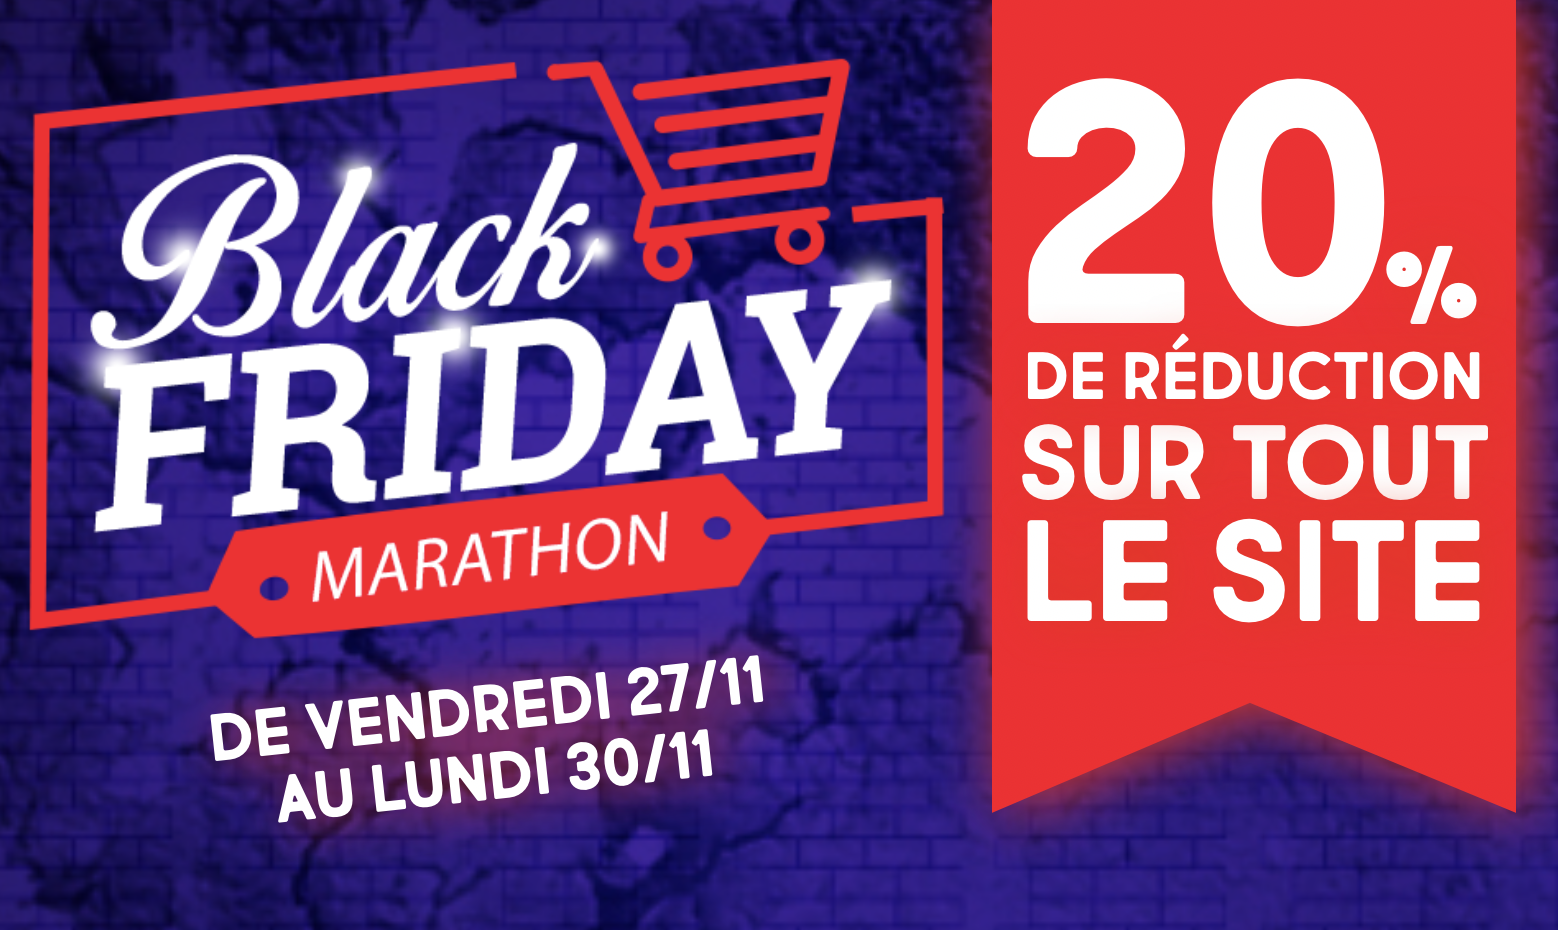 Black Friday Marathon